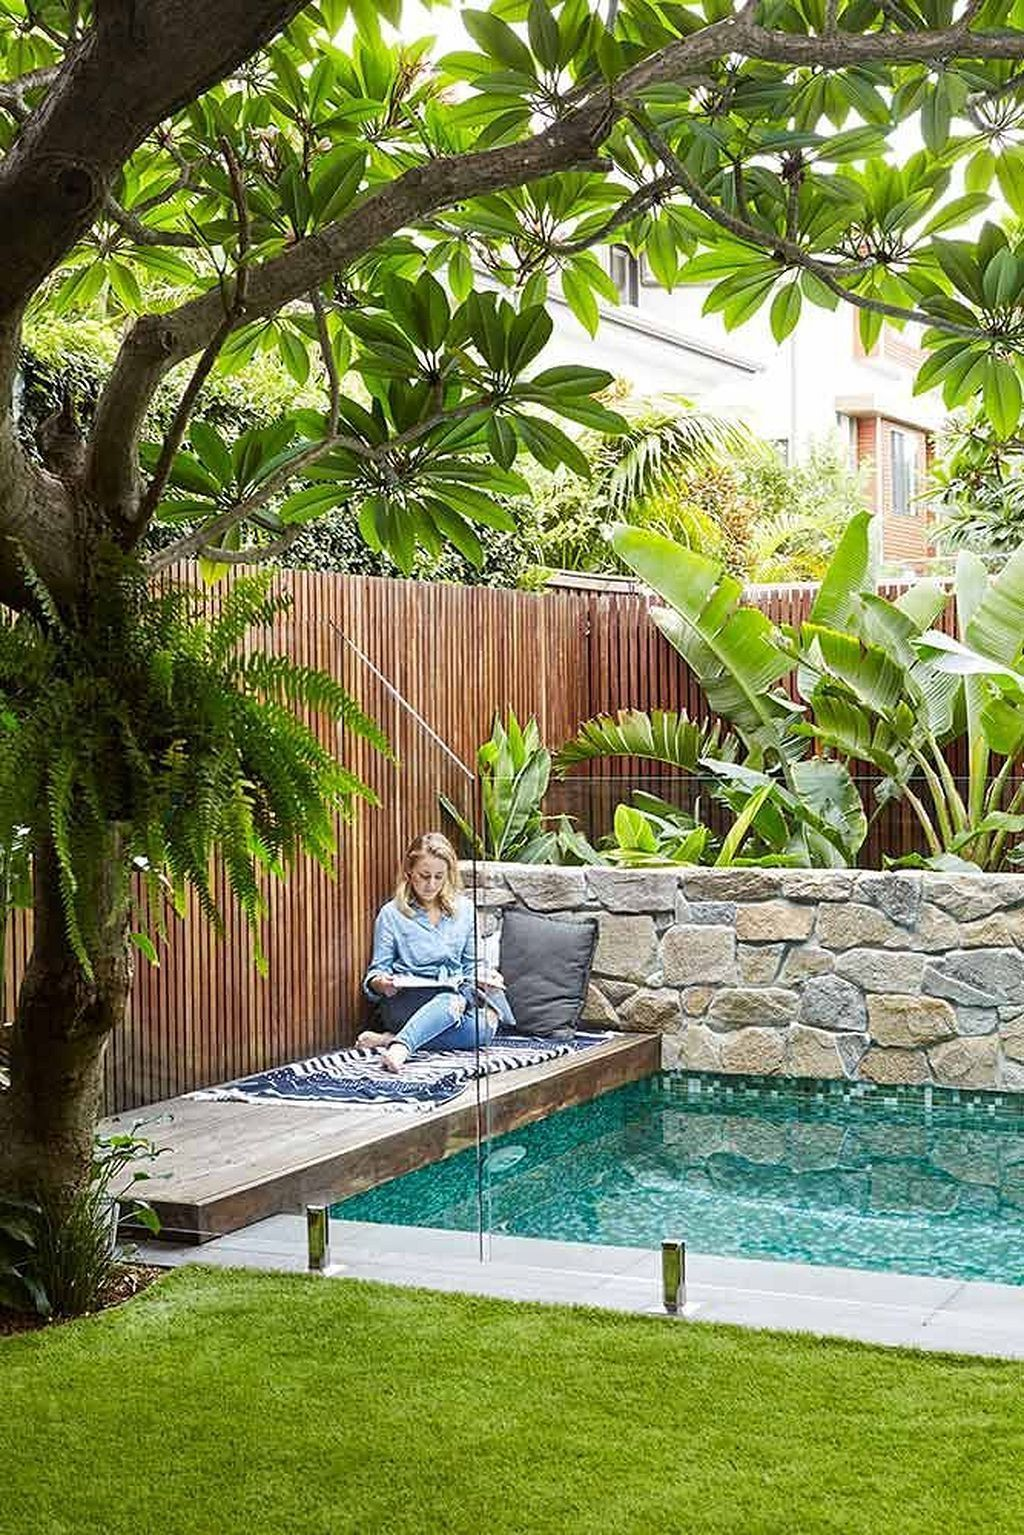 53 Minimalist Small Pool Design With Beautiful Garden Inside Roundecor Small Pool Design Small Backyard Pools Backyard